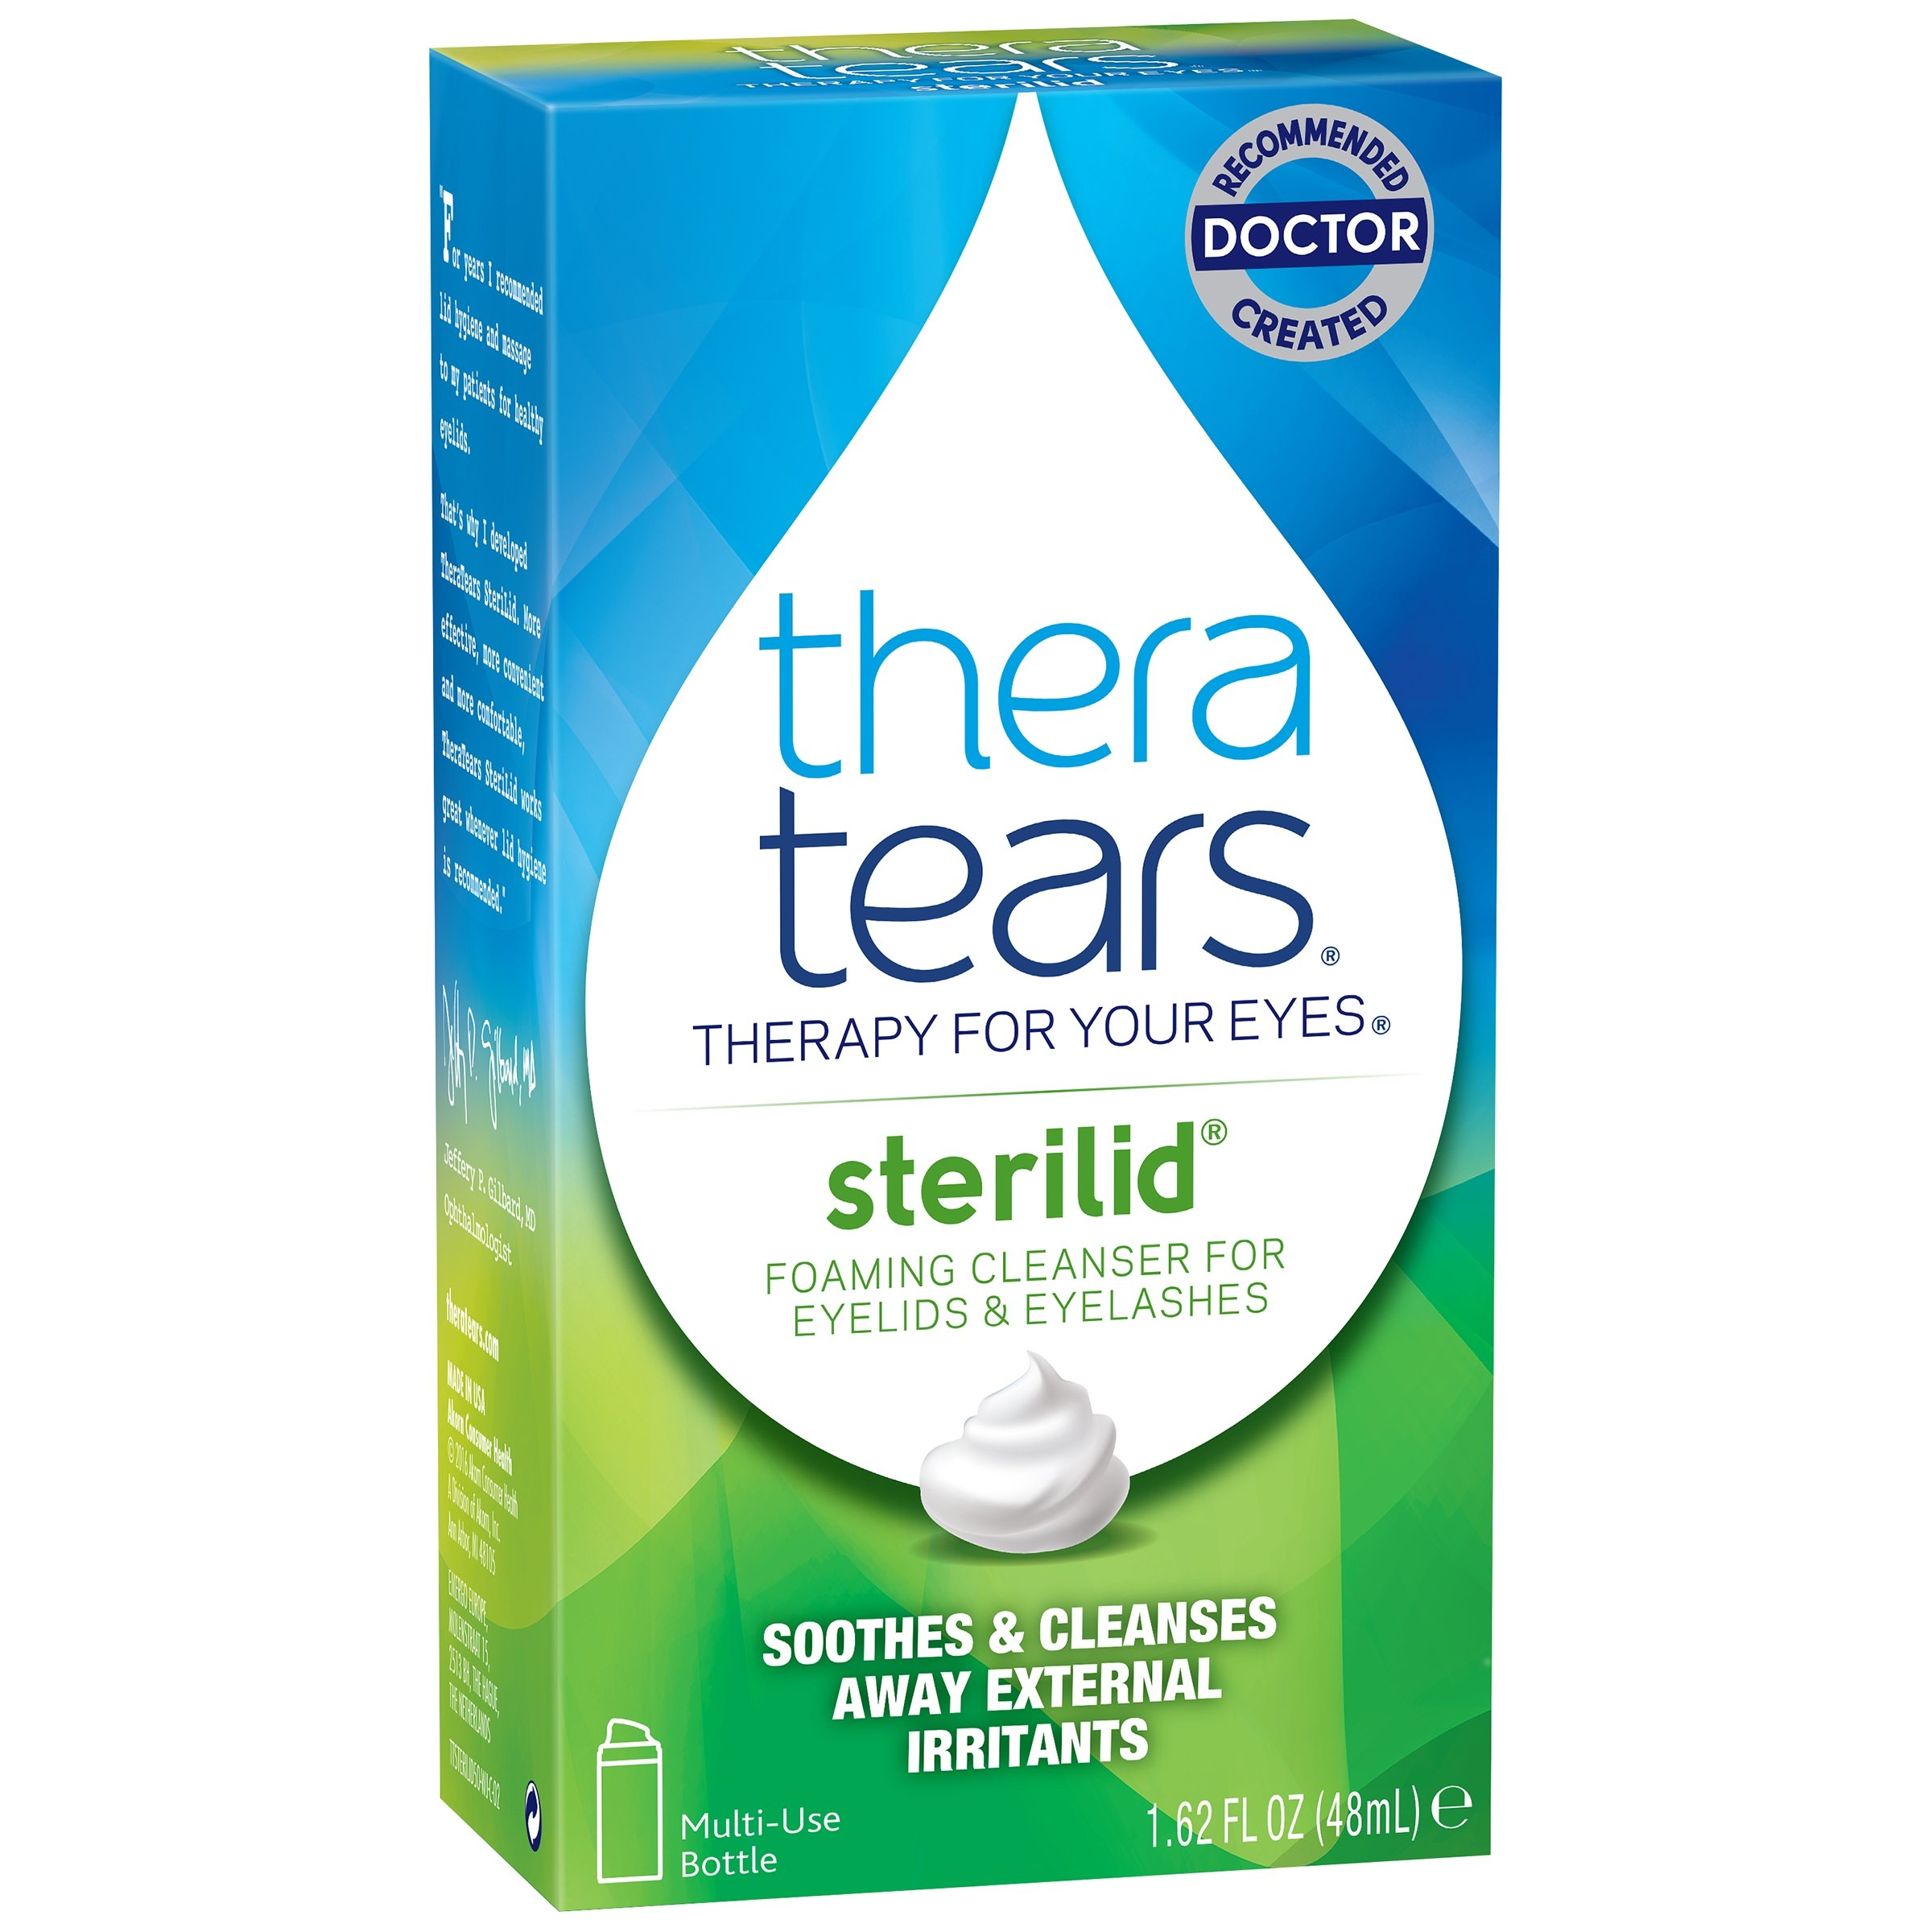 TheraTears Sterilid Eyelid Cleanser, Multi SP 5 Pack ( 8.10 FL OZ Total ) Thera-Jg